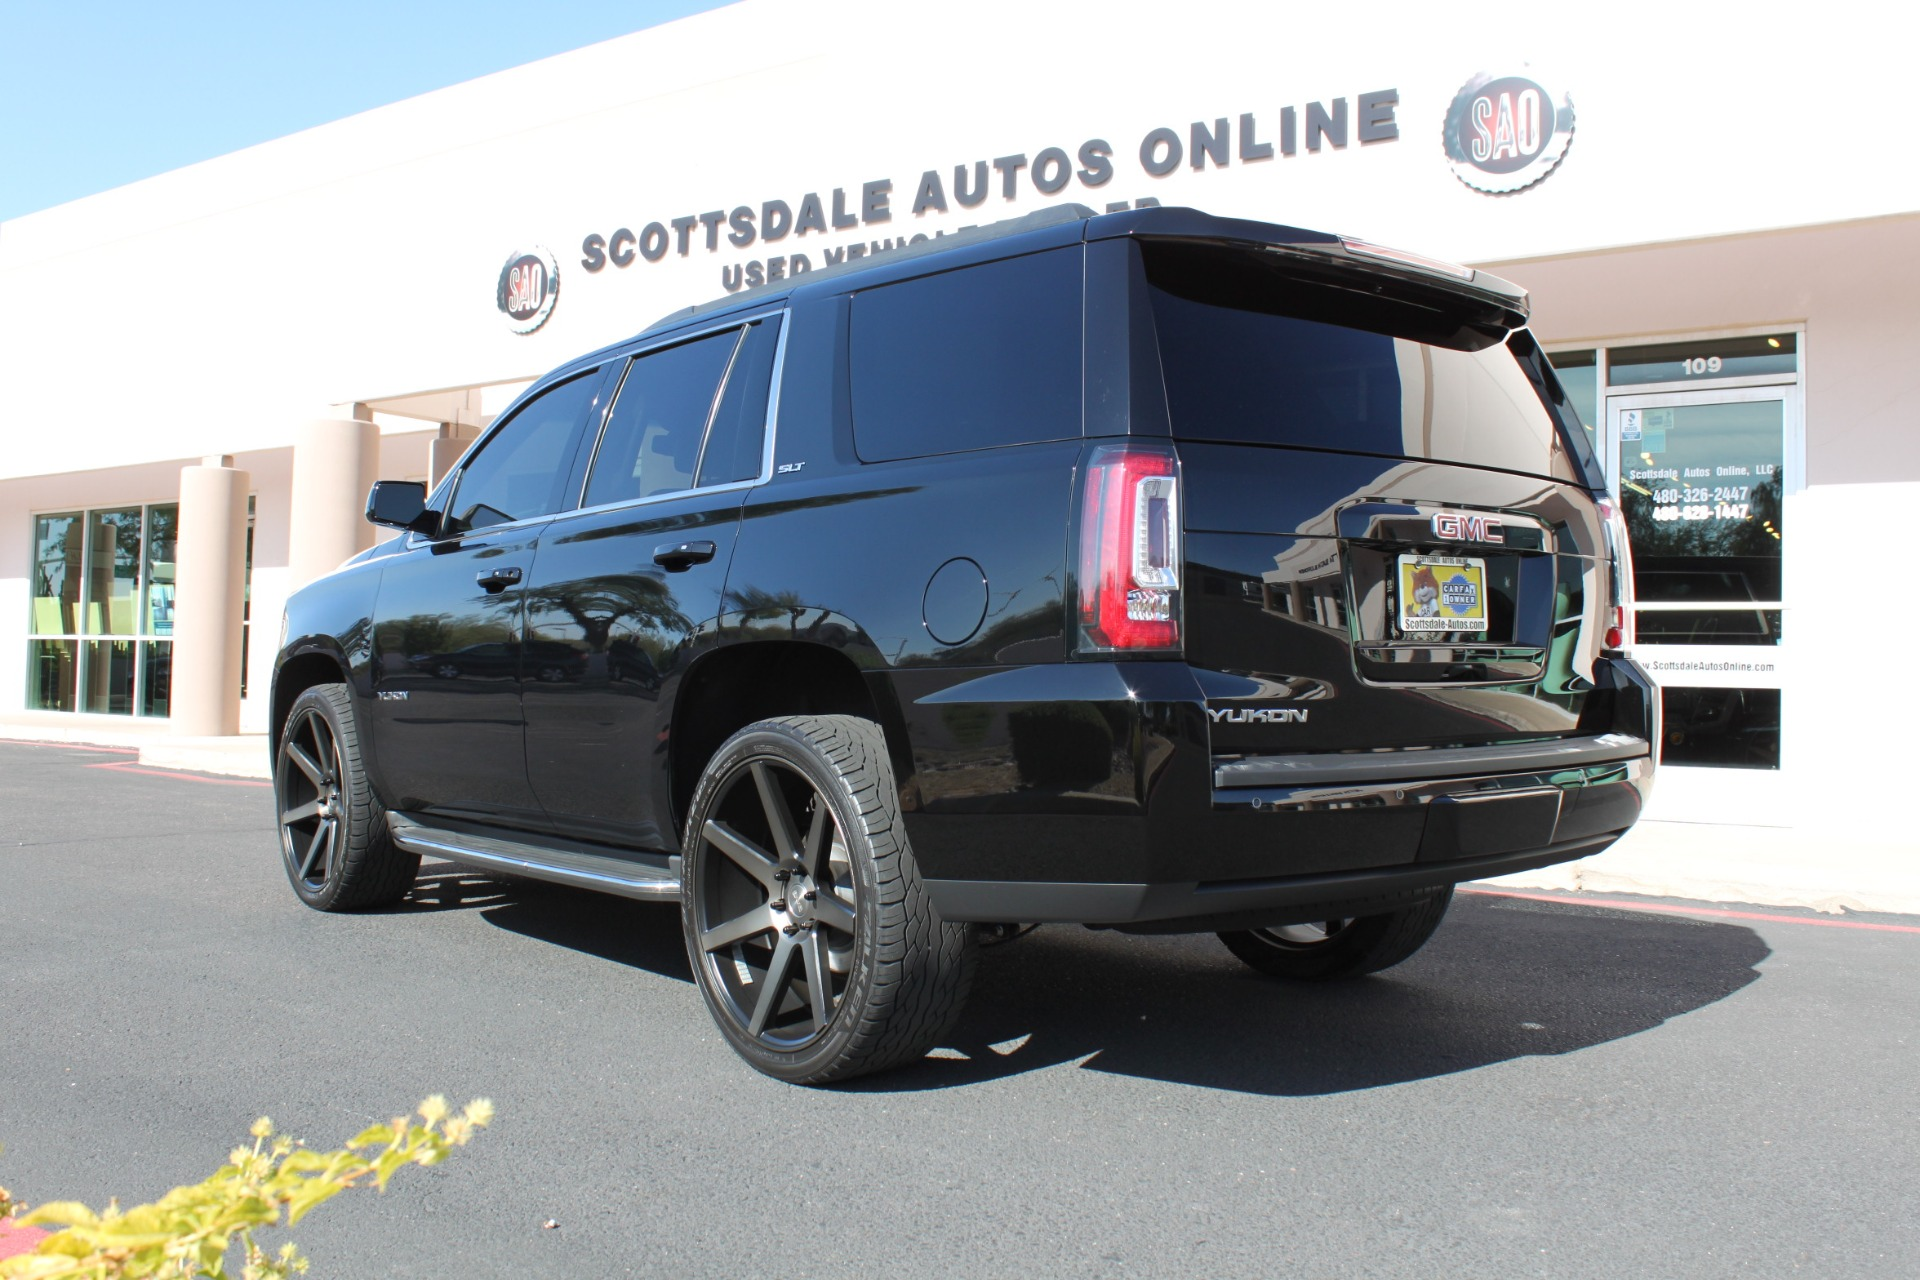 Used-2015-GMC-Yukon-SLT-Chevelle